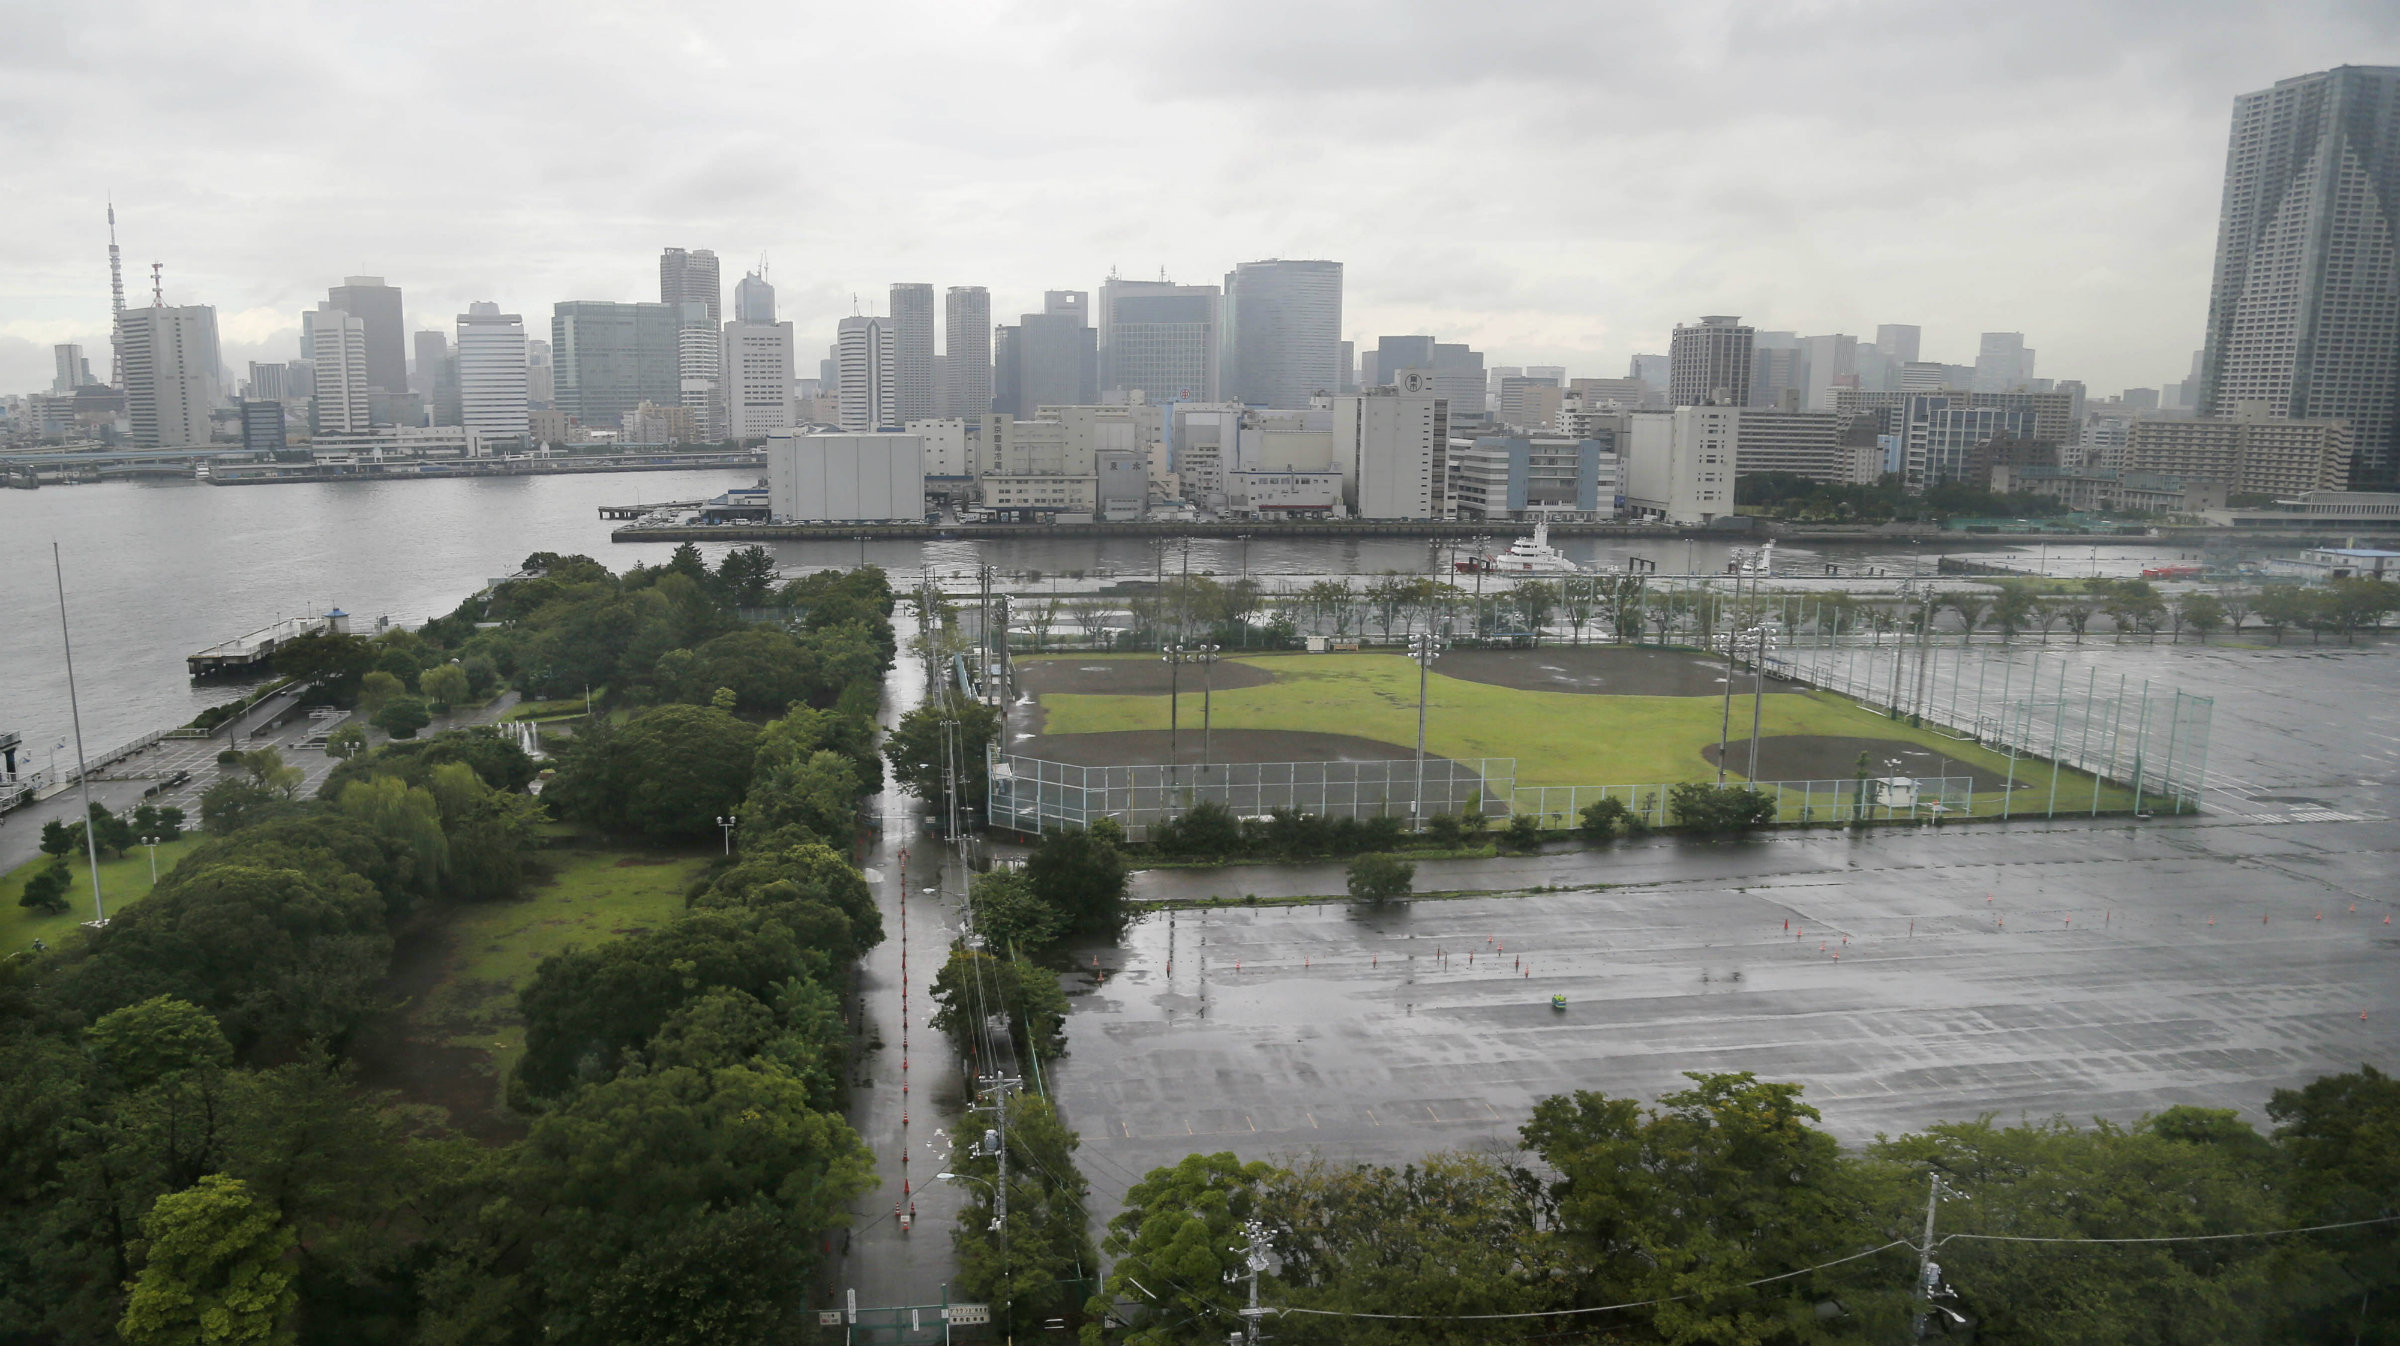 Tokyo's site for the athletes village for the 2020 Olympics.